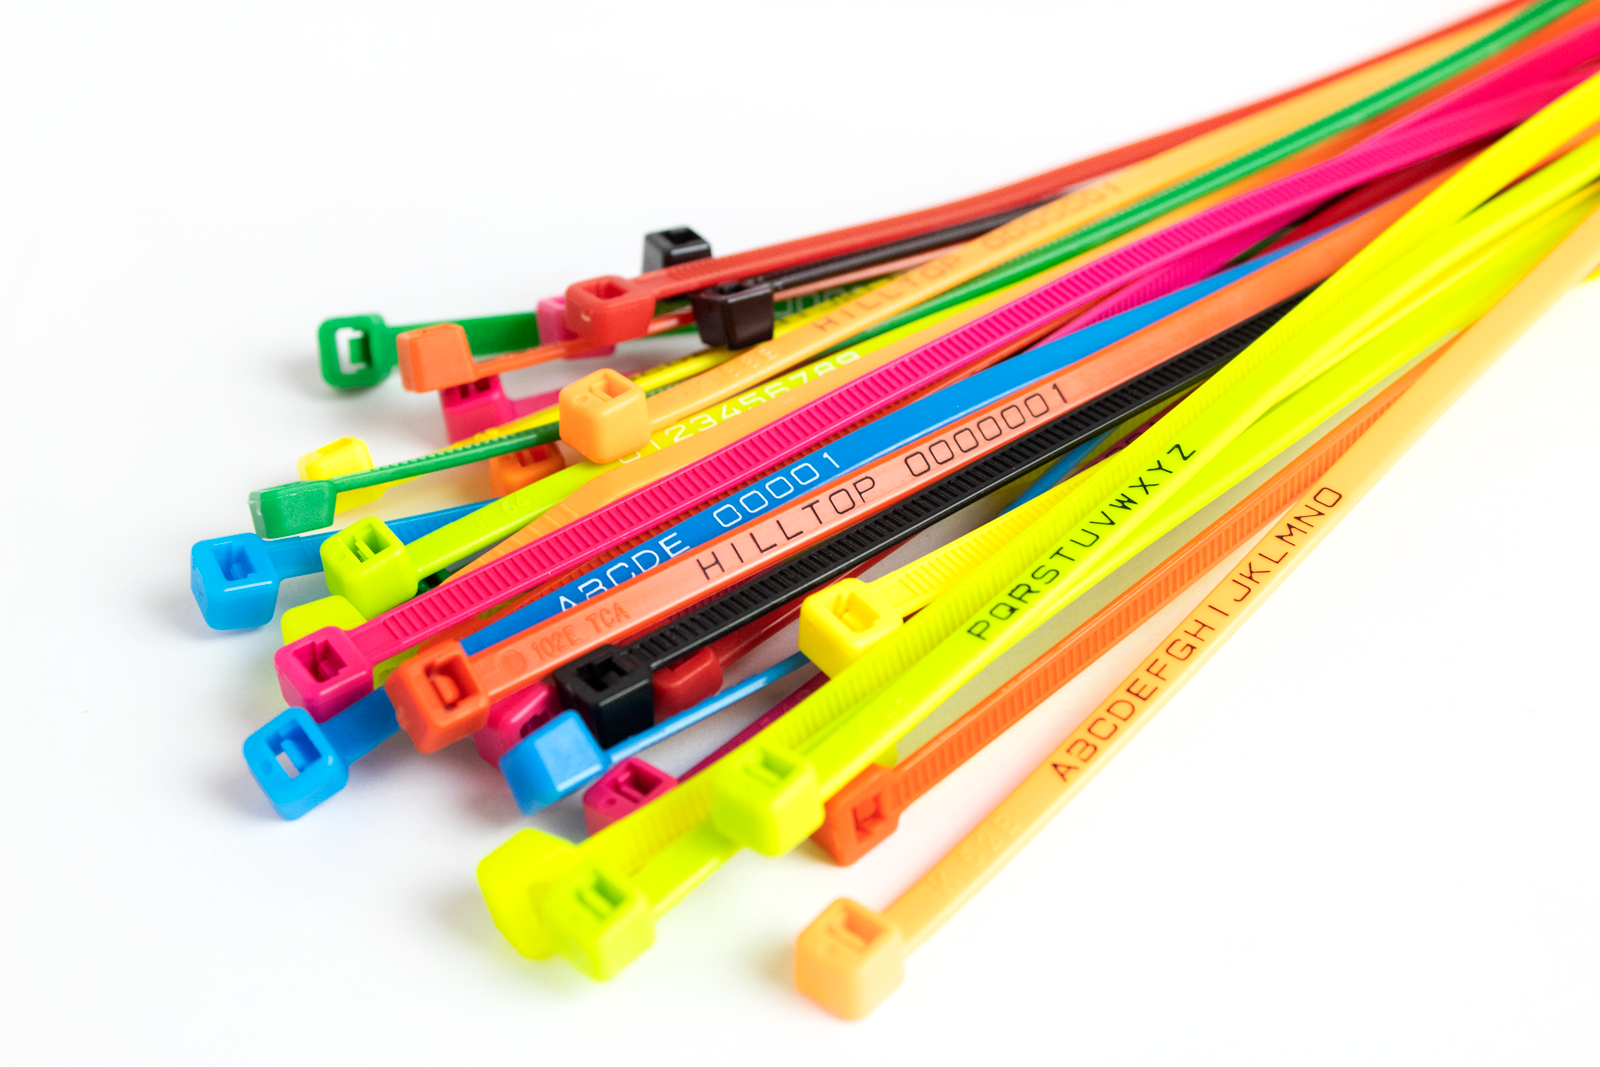 Cable ties in various colours, some with printed letters or numbers